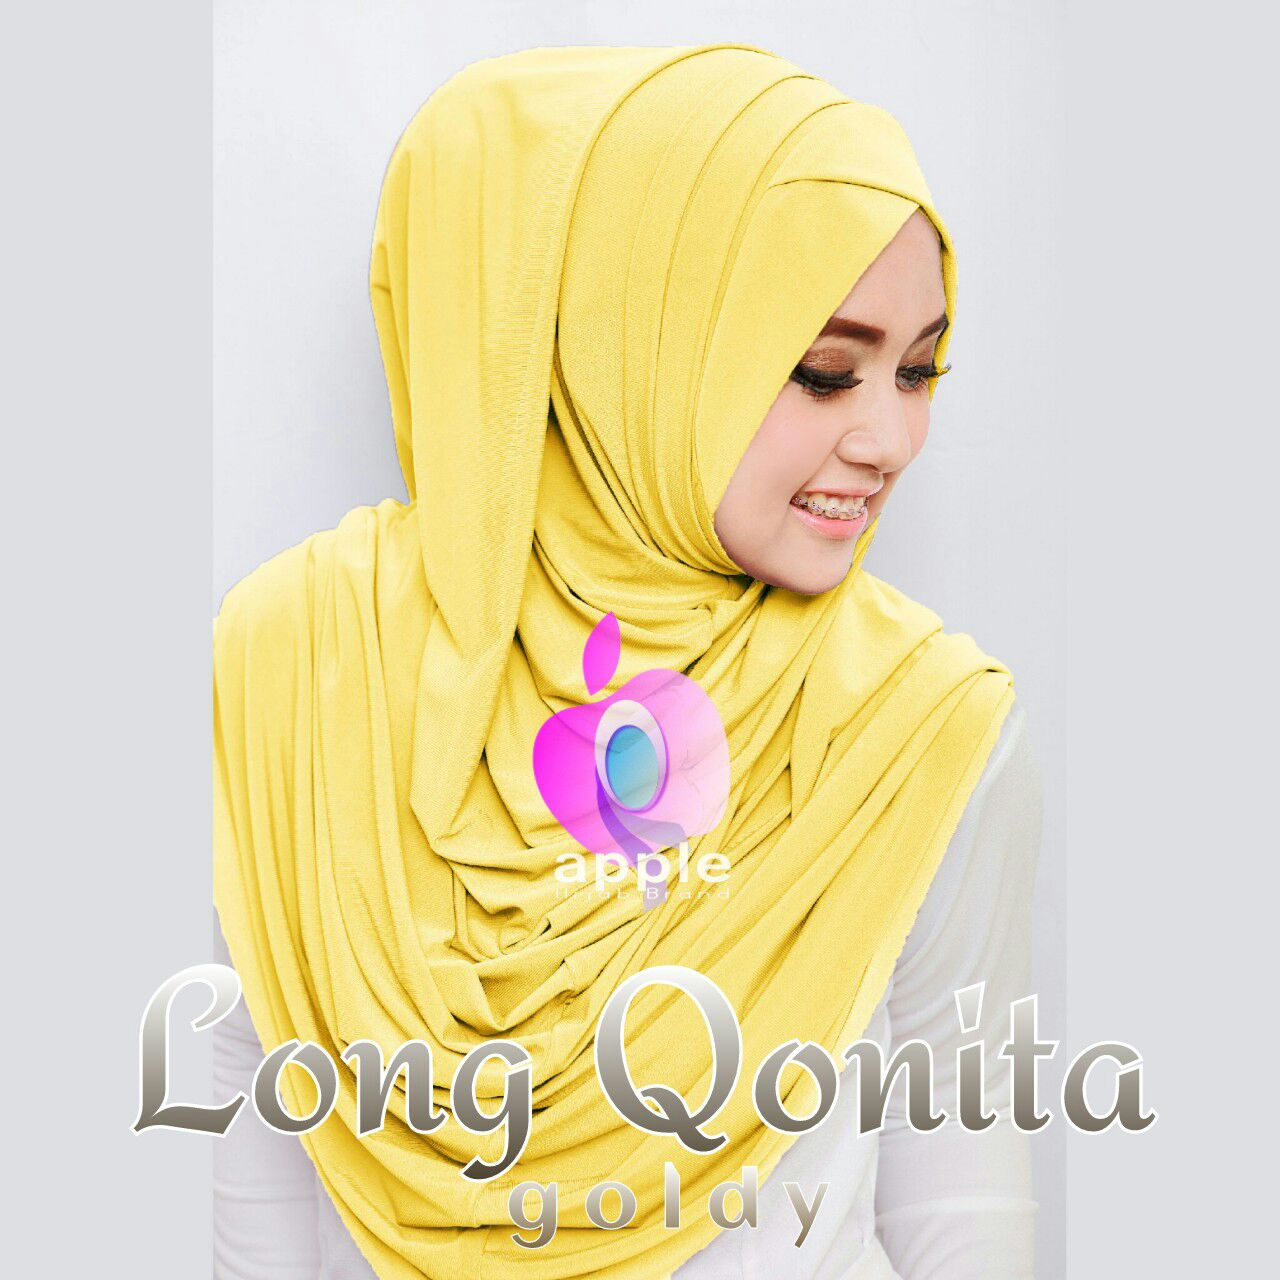 apple hijab long qonita goldy